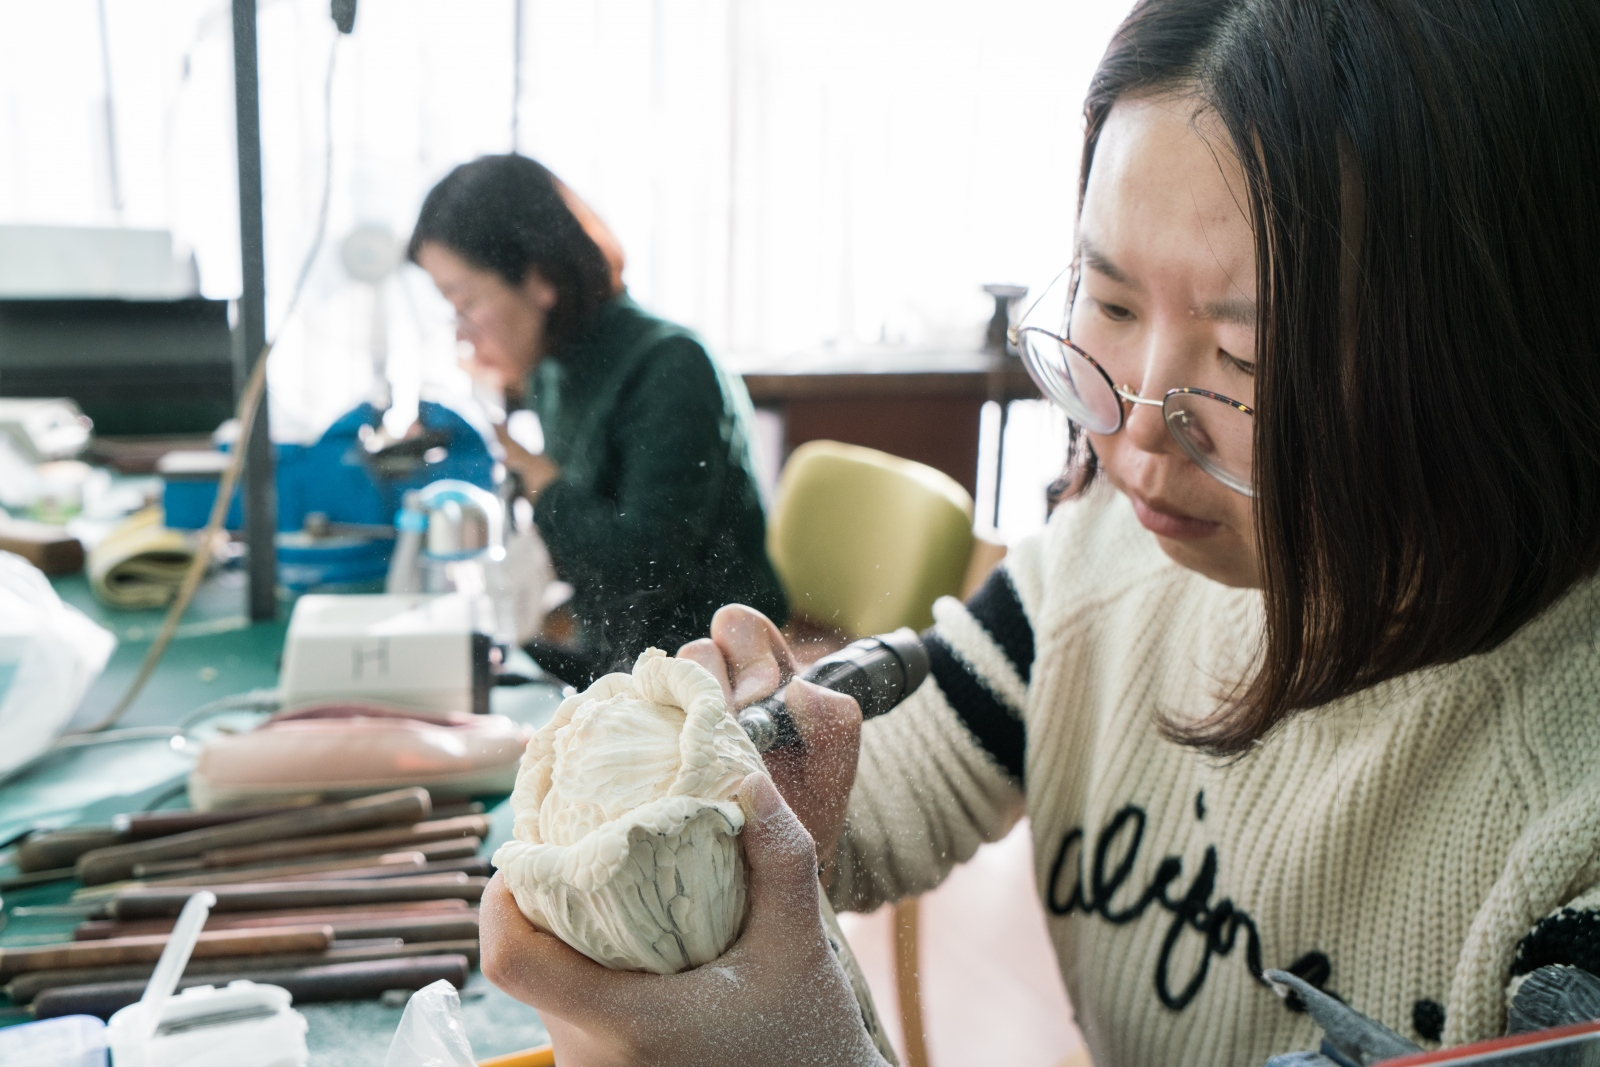 He Na, 27, works on an ivory statue at her workstation at Li Chunke's ivory carving workshop in Beijing, China on December 10, 2017.